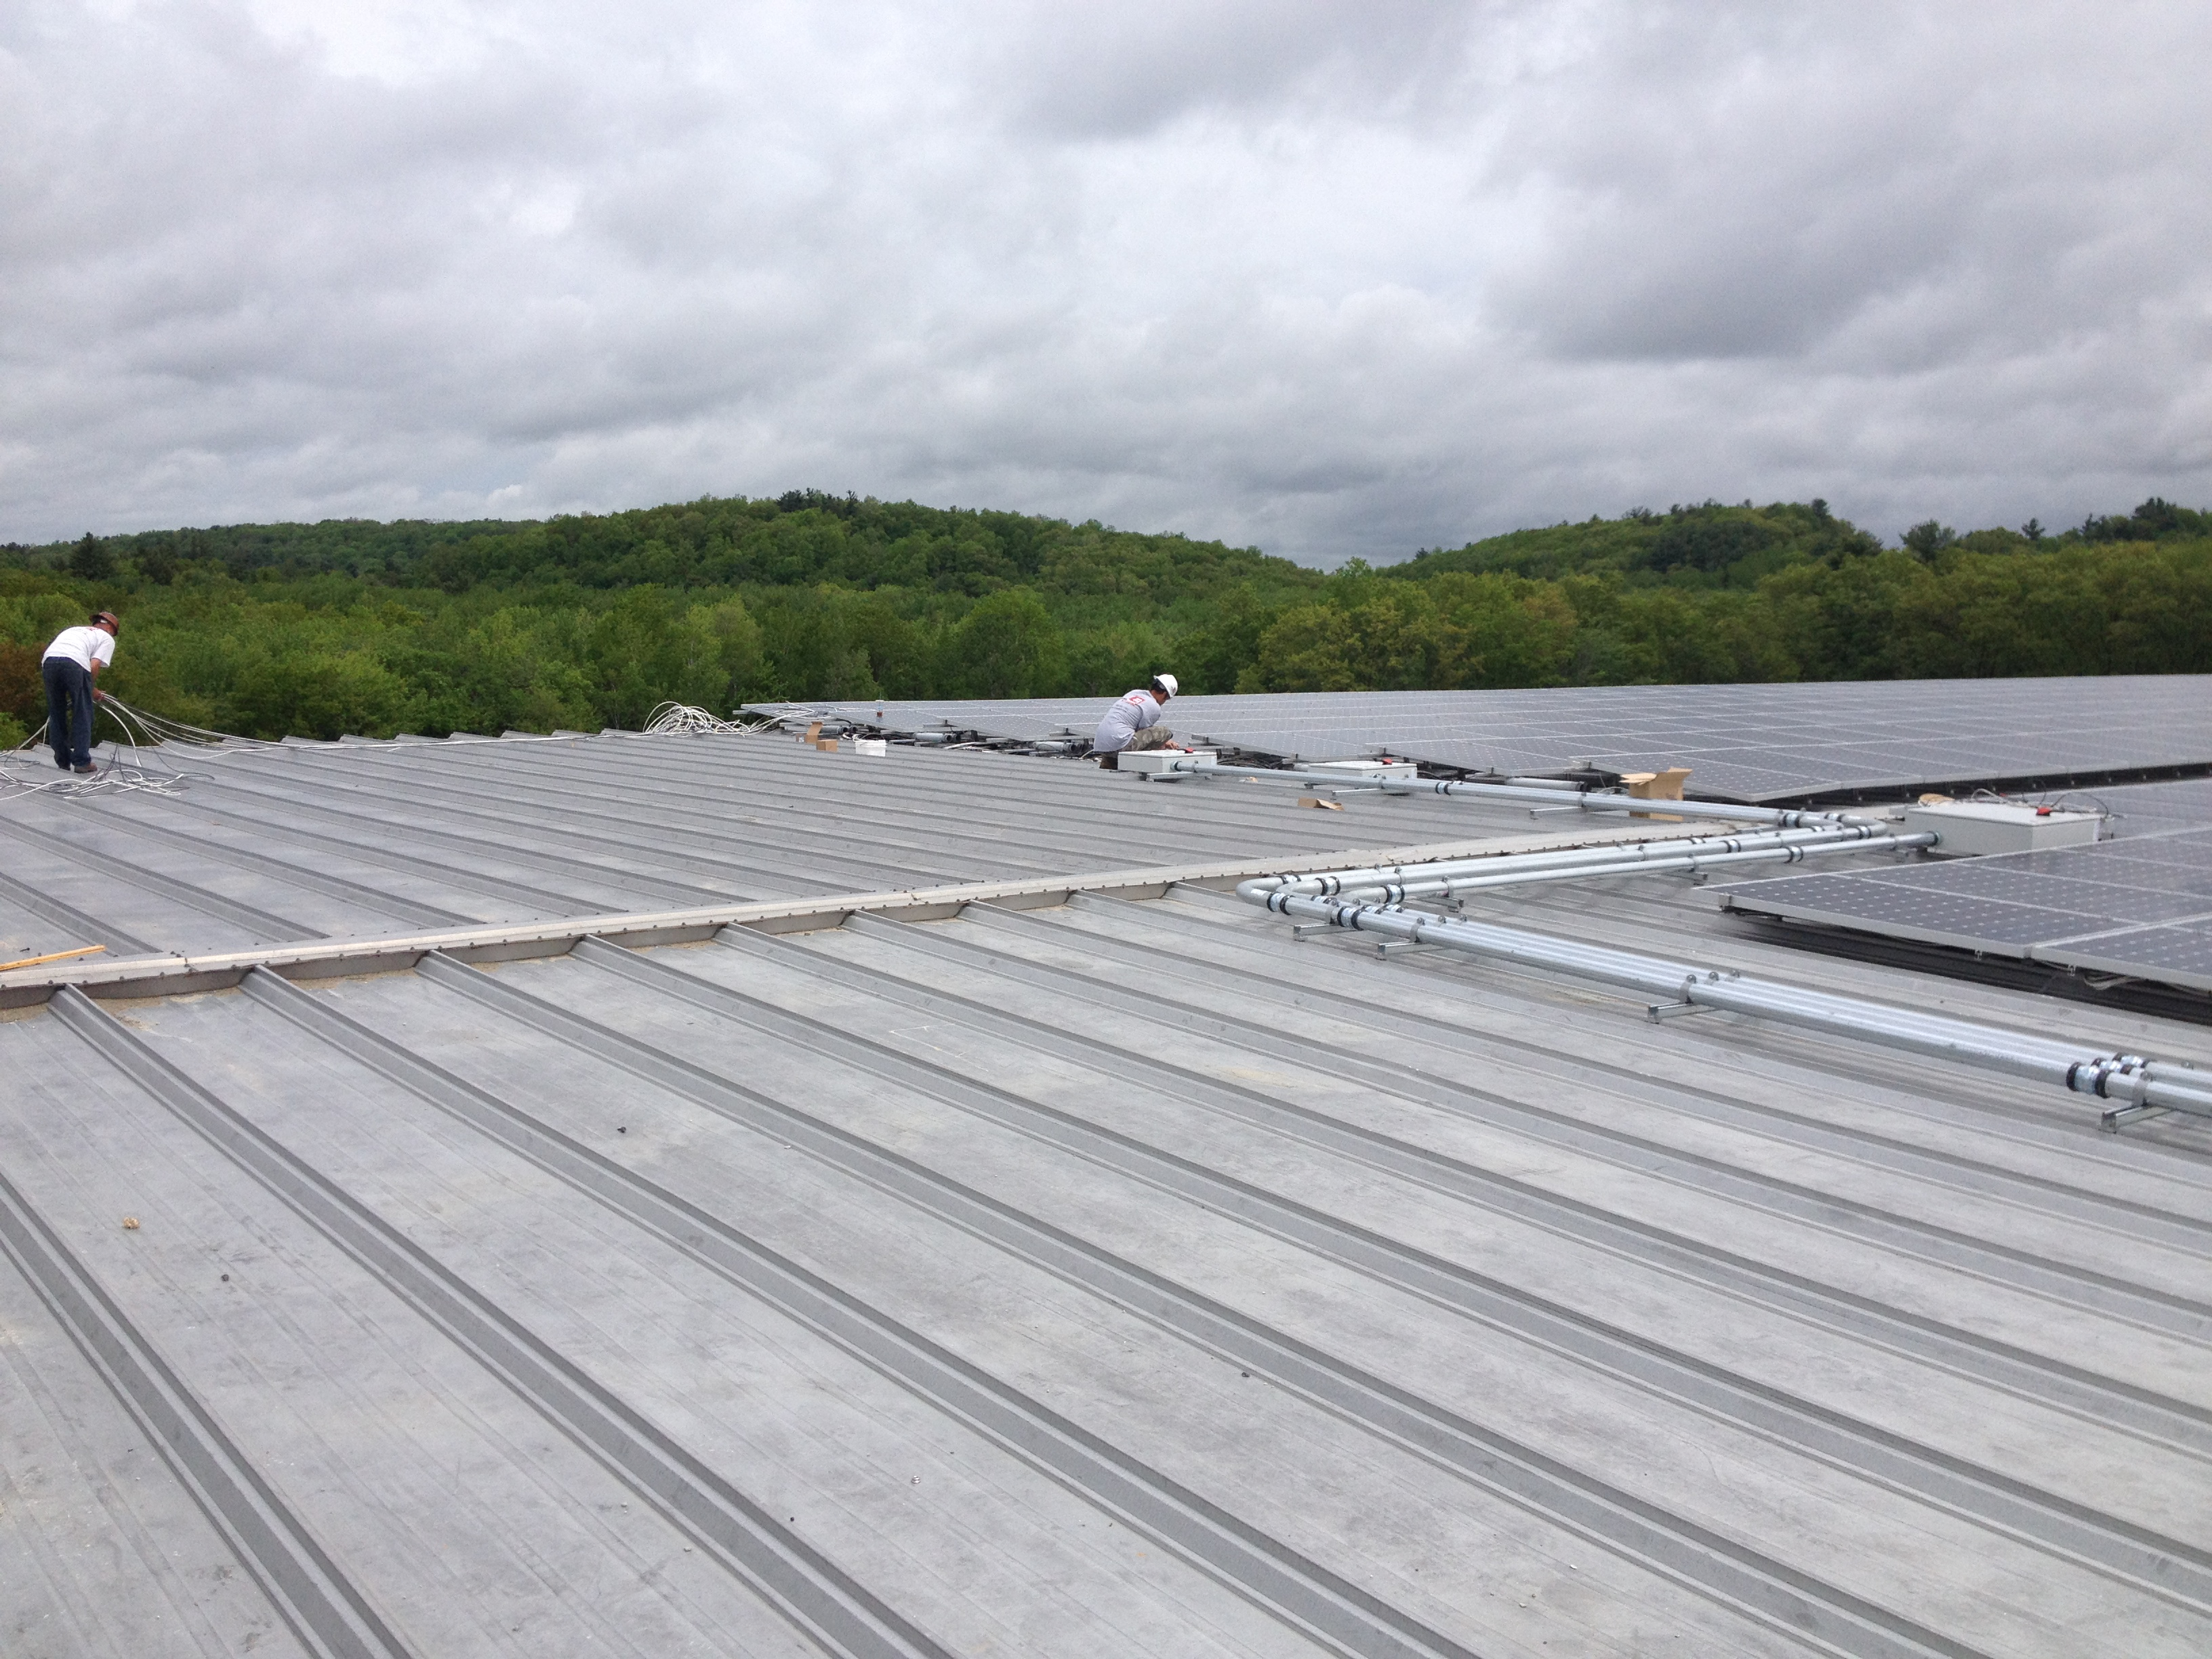 John previewing the wires on the standing seam metal roof